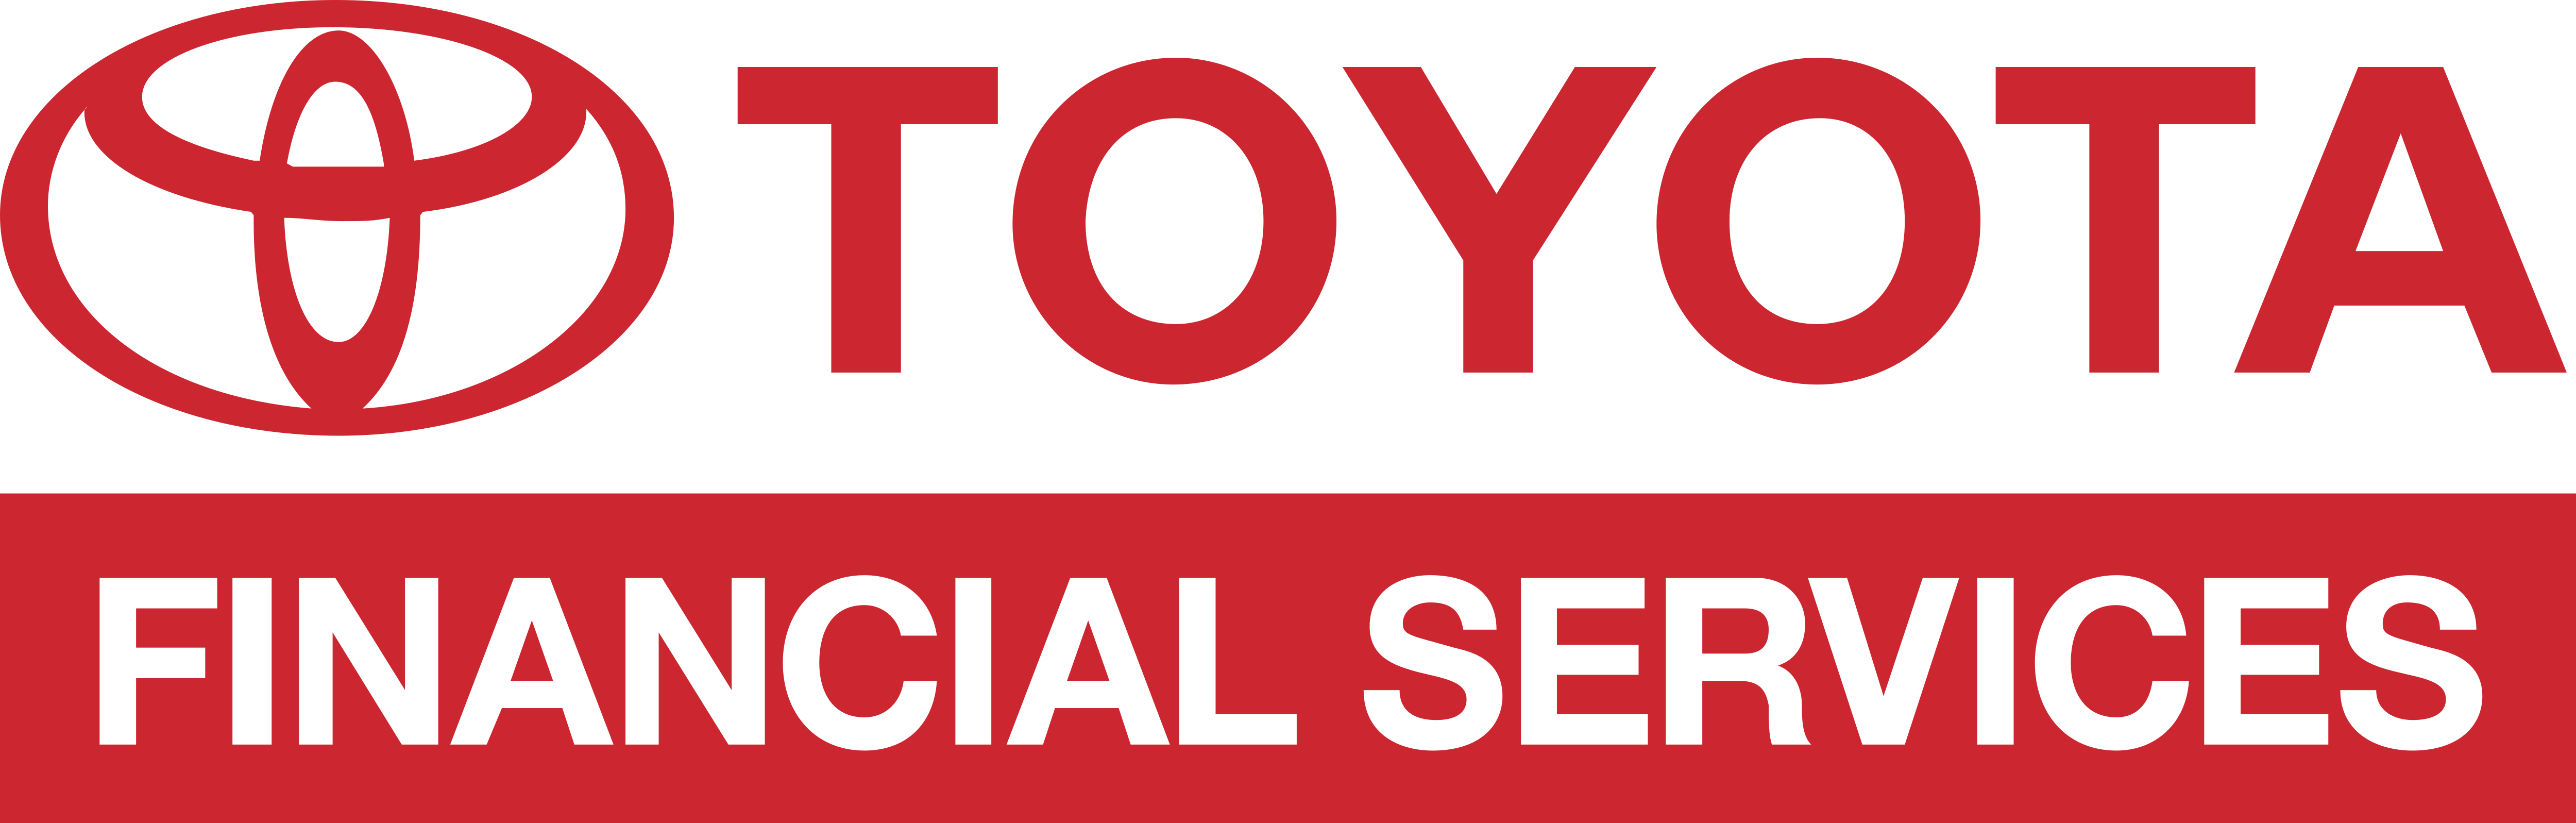 Toyota Financial Services – Logos Download